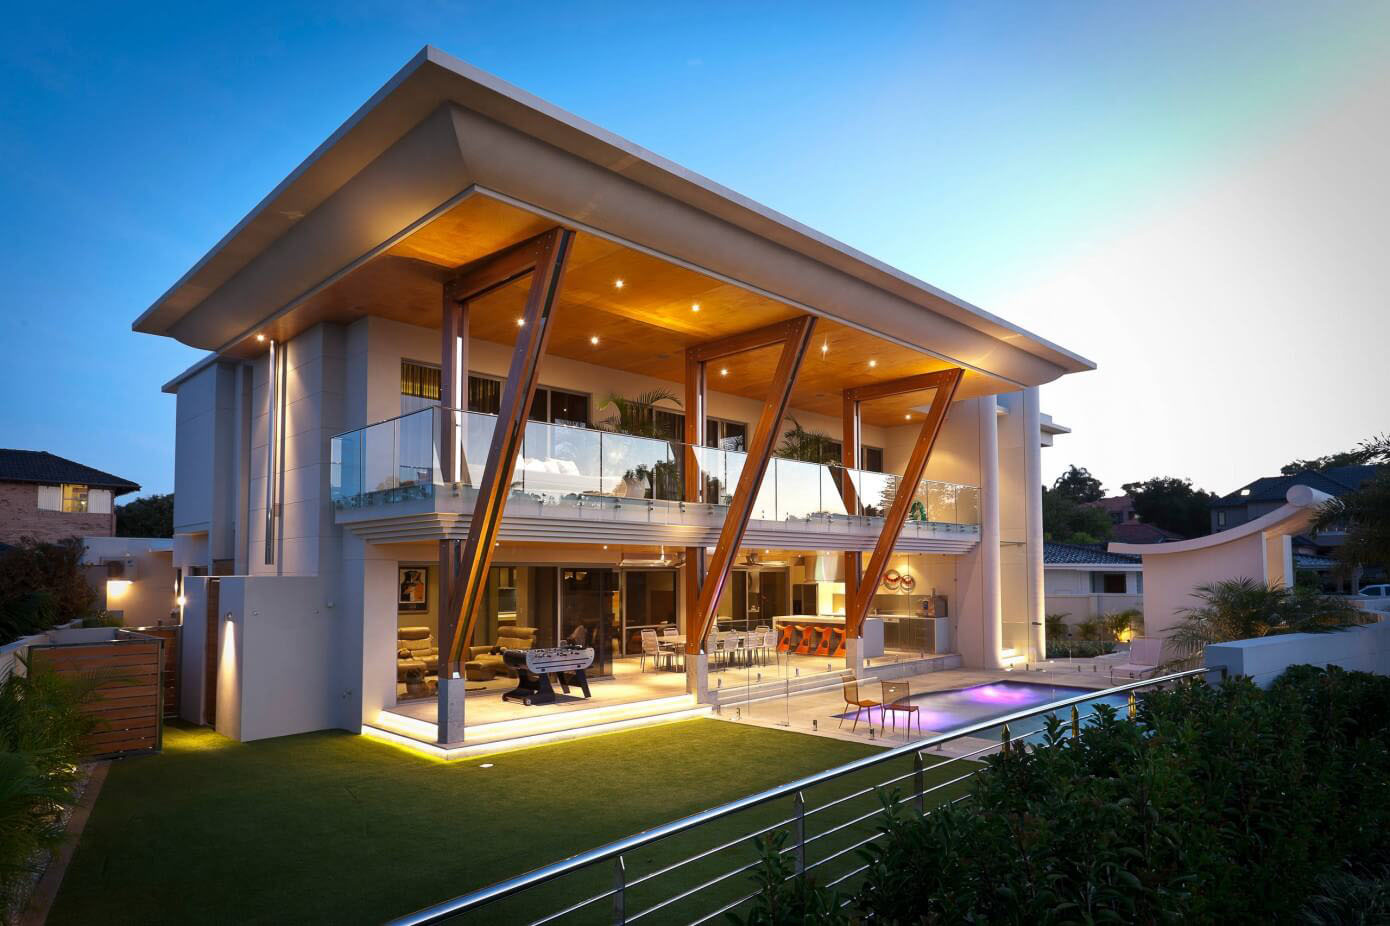 Ultra modern home in perth with large roof idesignarch for Design home modern